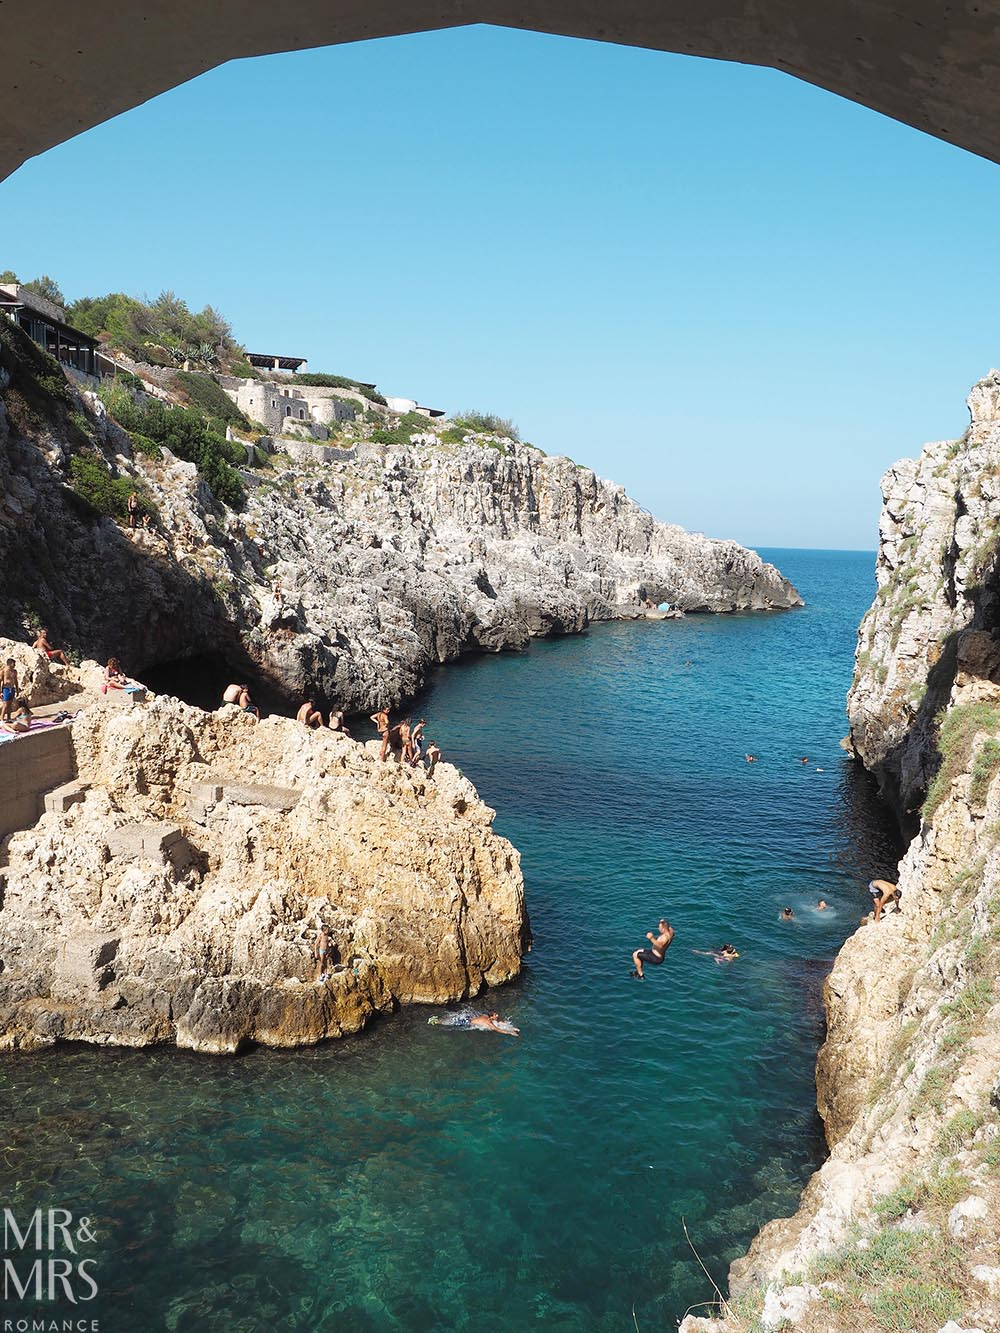 Canale del Ciolo - Cliff diving - Where to take the best photos in Puglia Italy - MMR